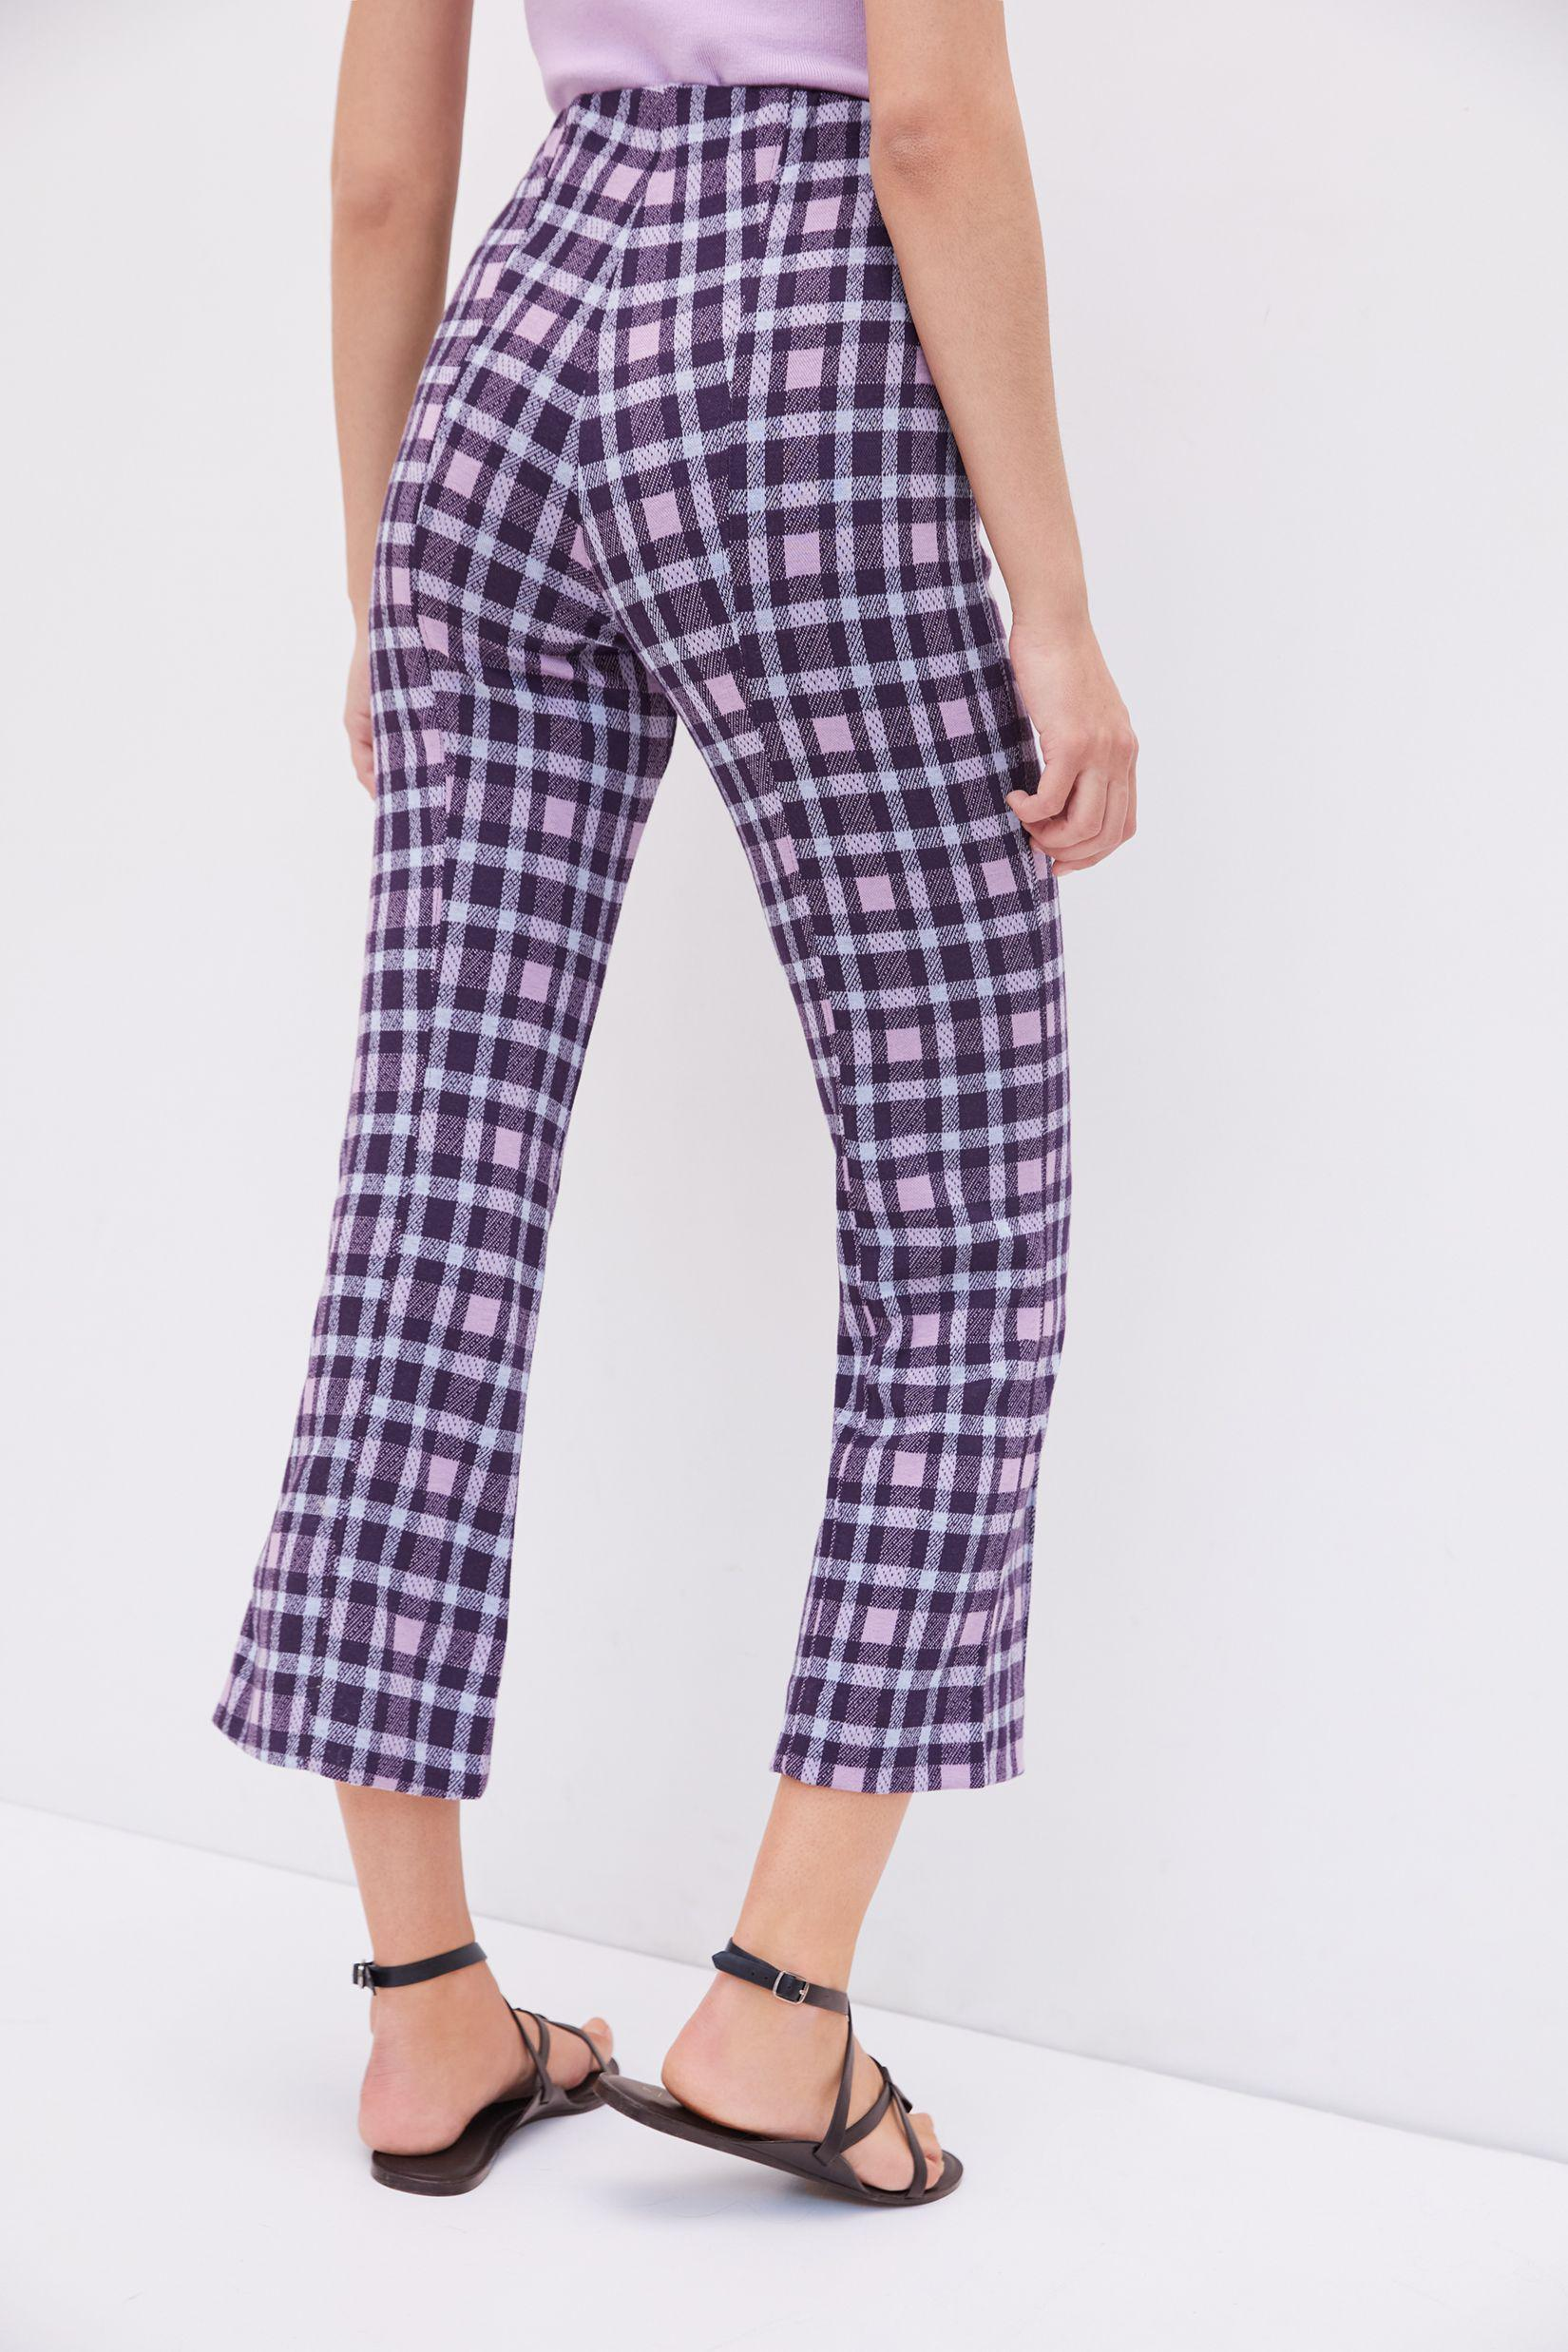 Maeve Cropped Flare Pants 1